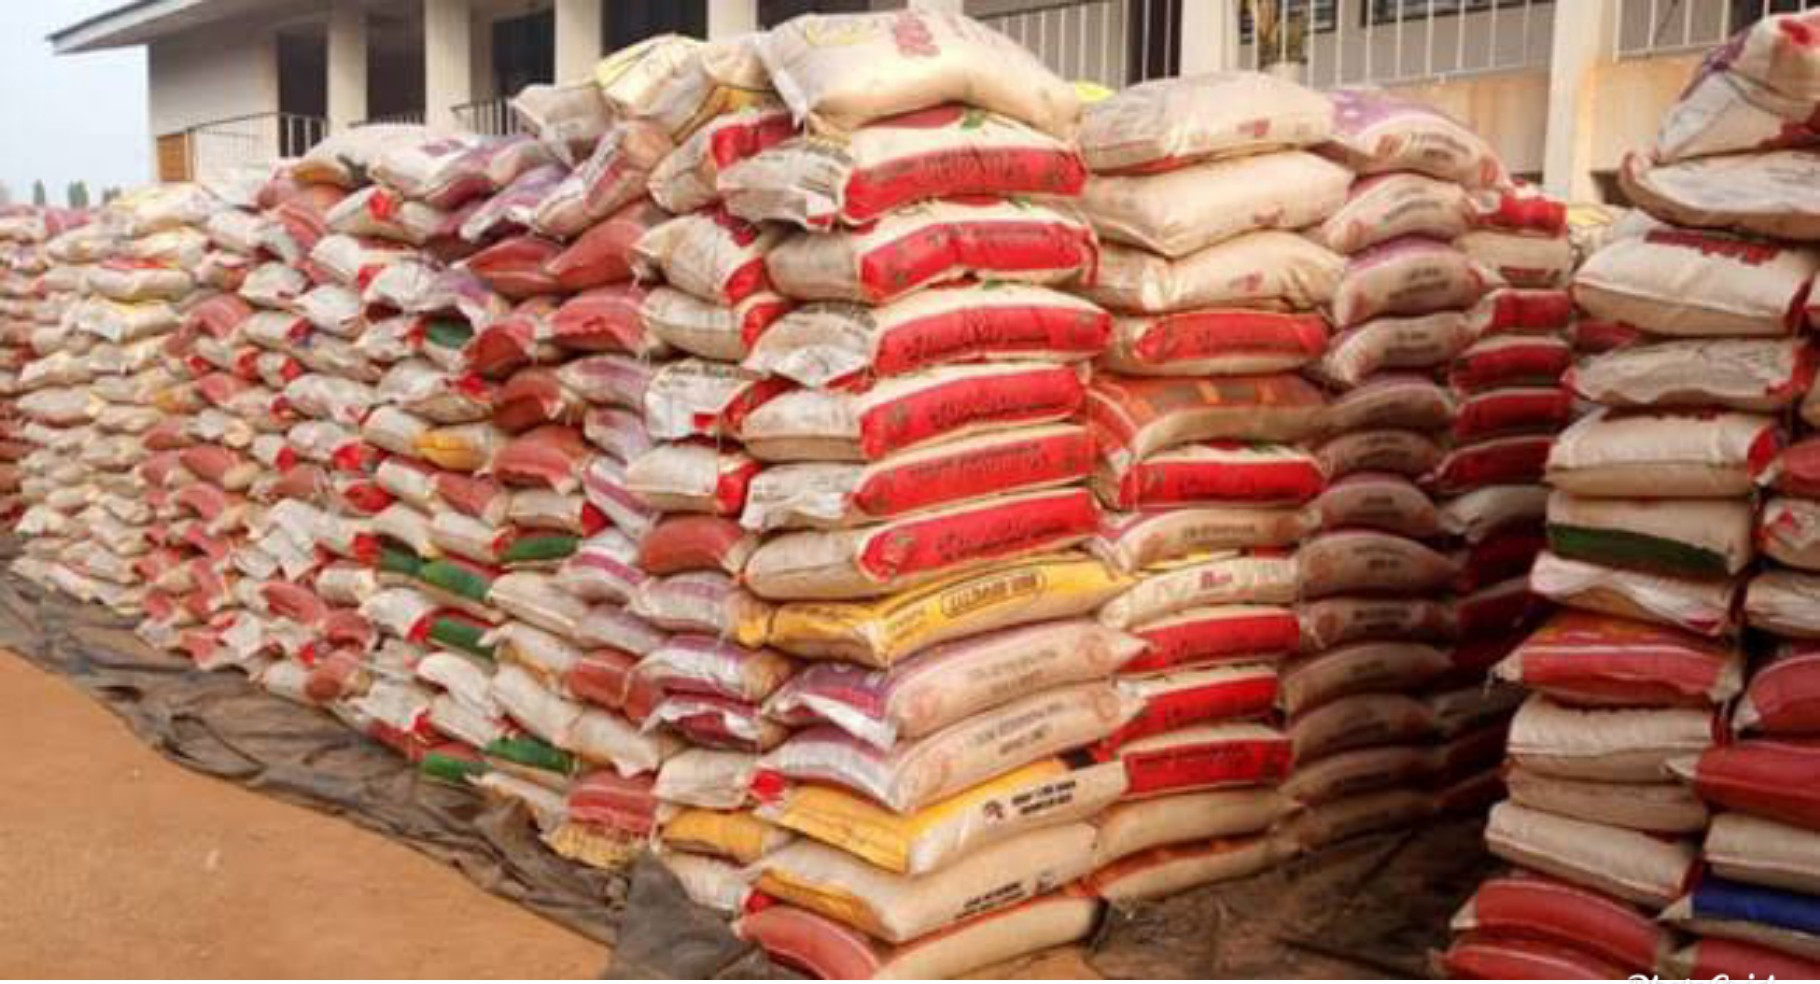 President Buhari orders distribution of 150 trucks of seized rice to Nigerians